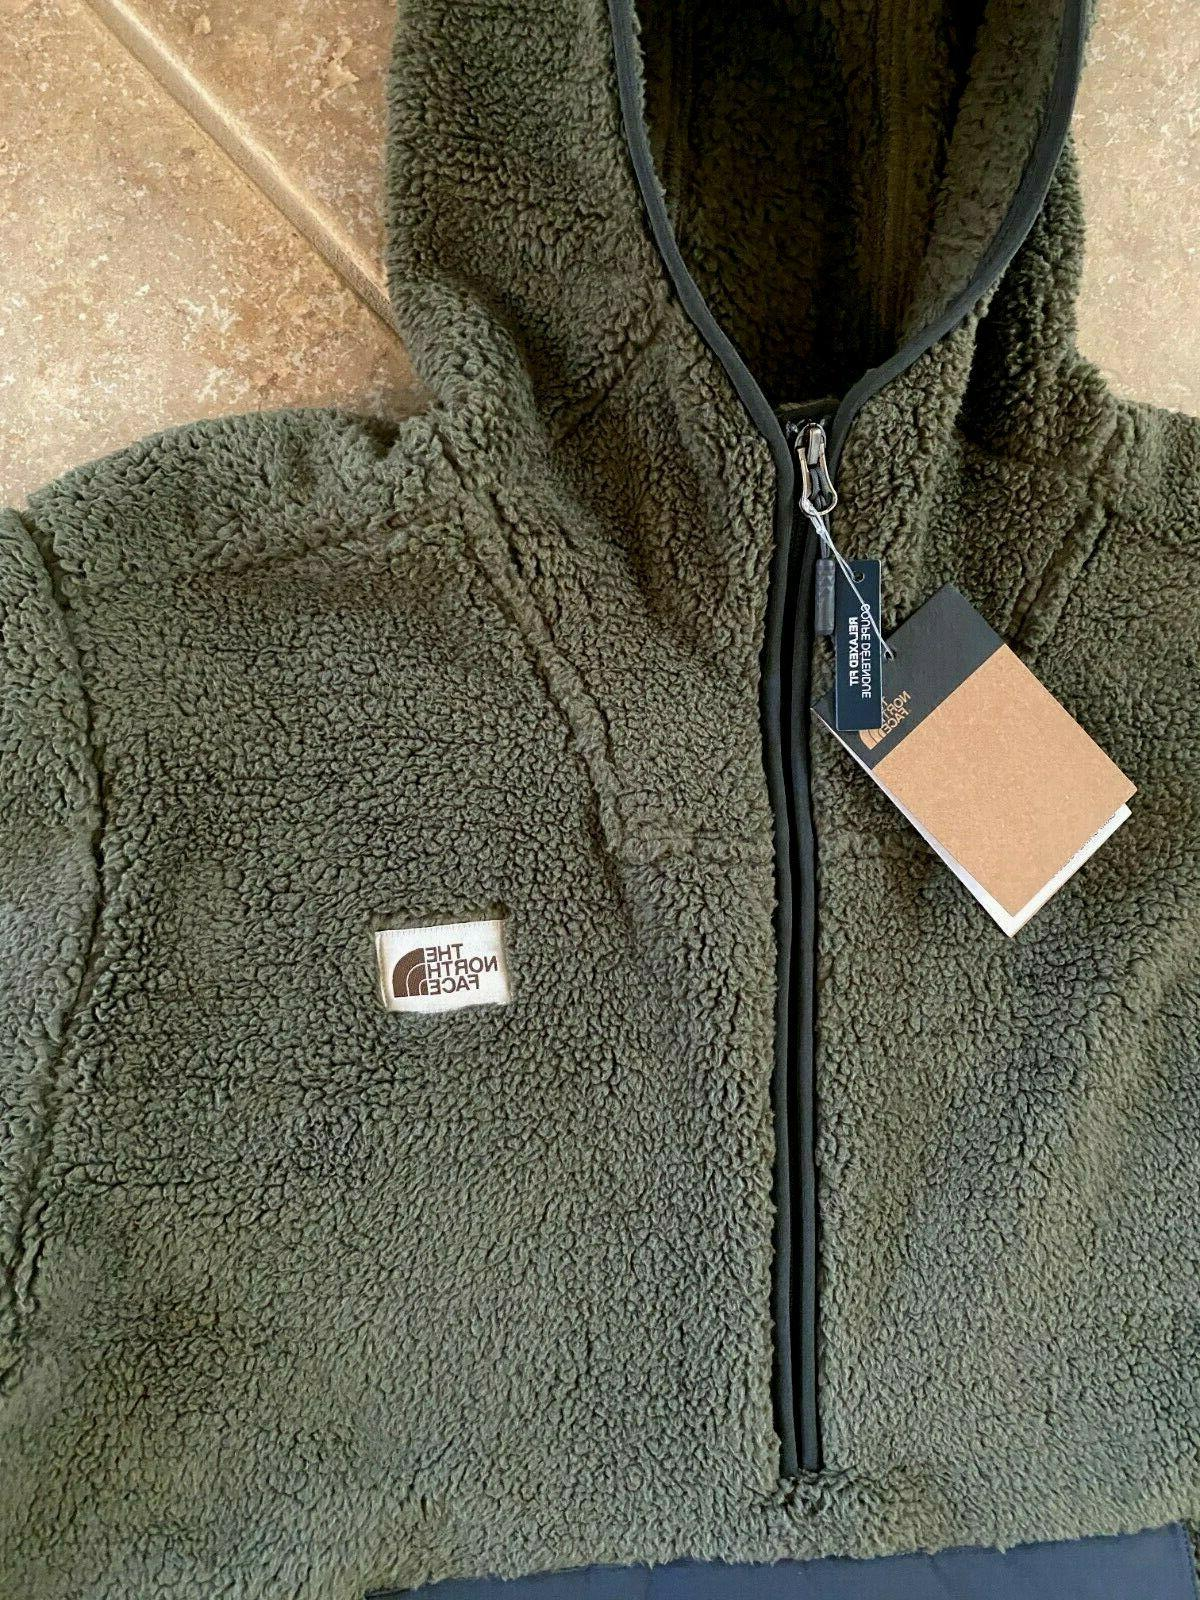 The North Face Sherpa Fleece Hoodie XL NWT $149